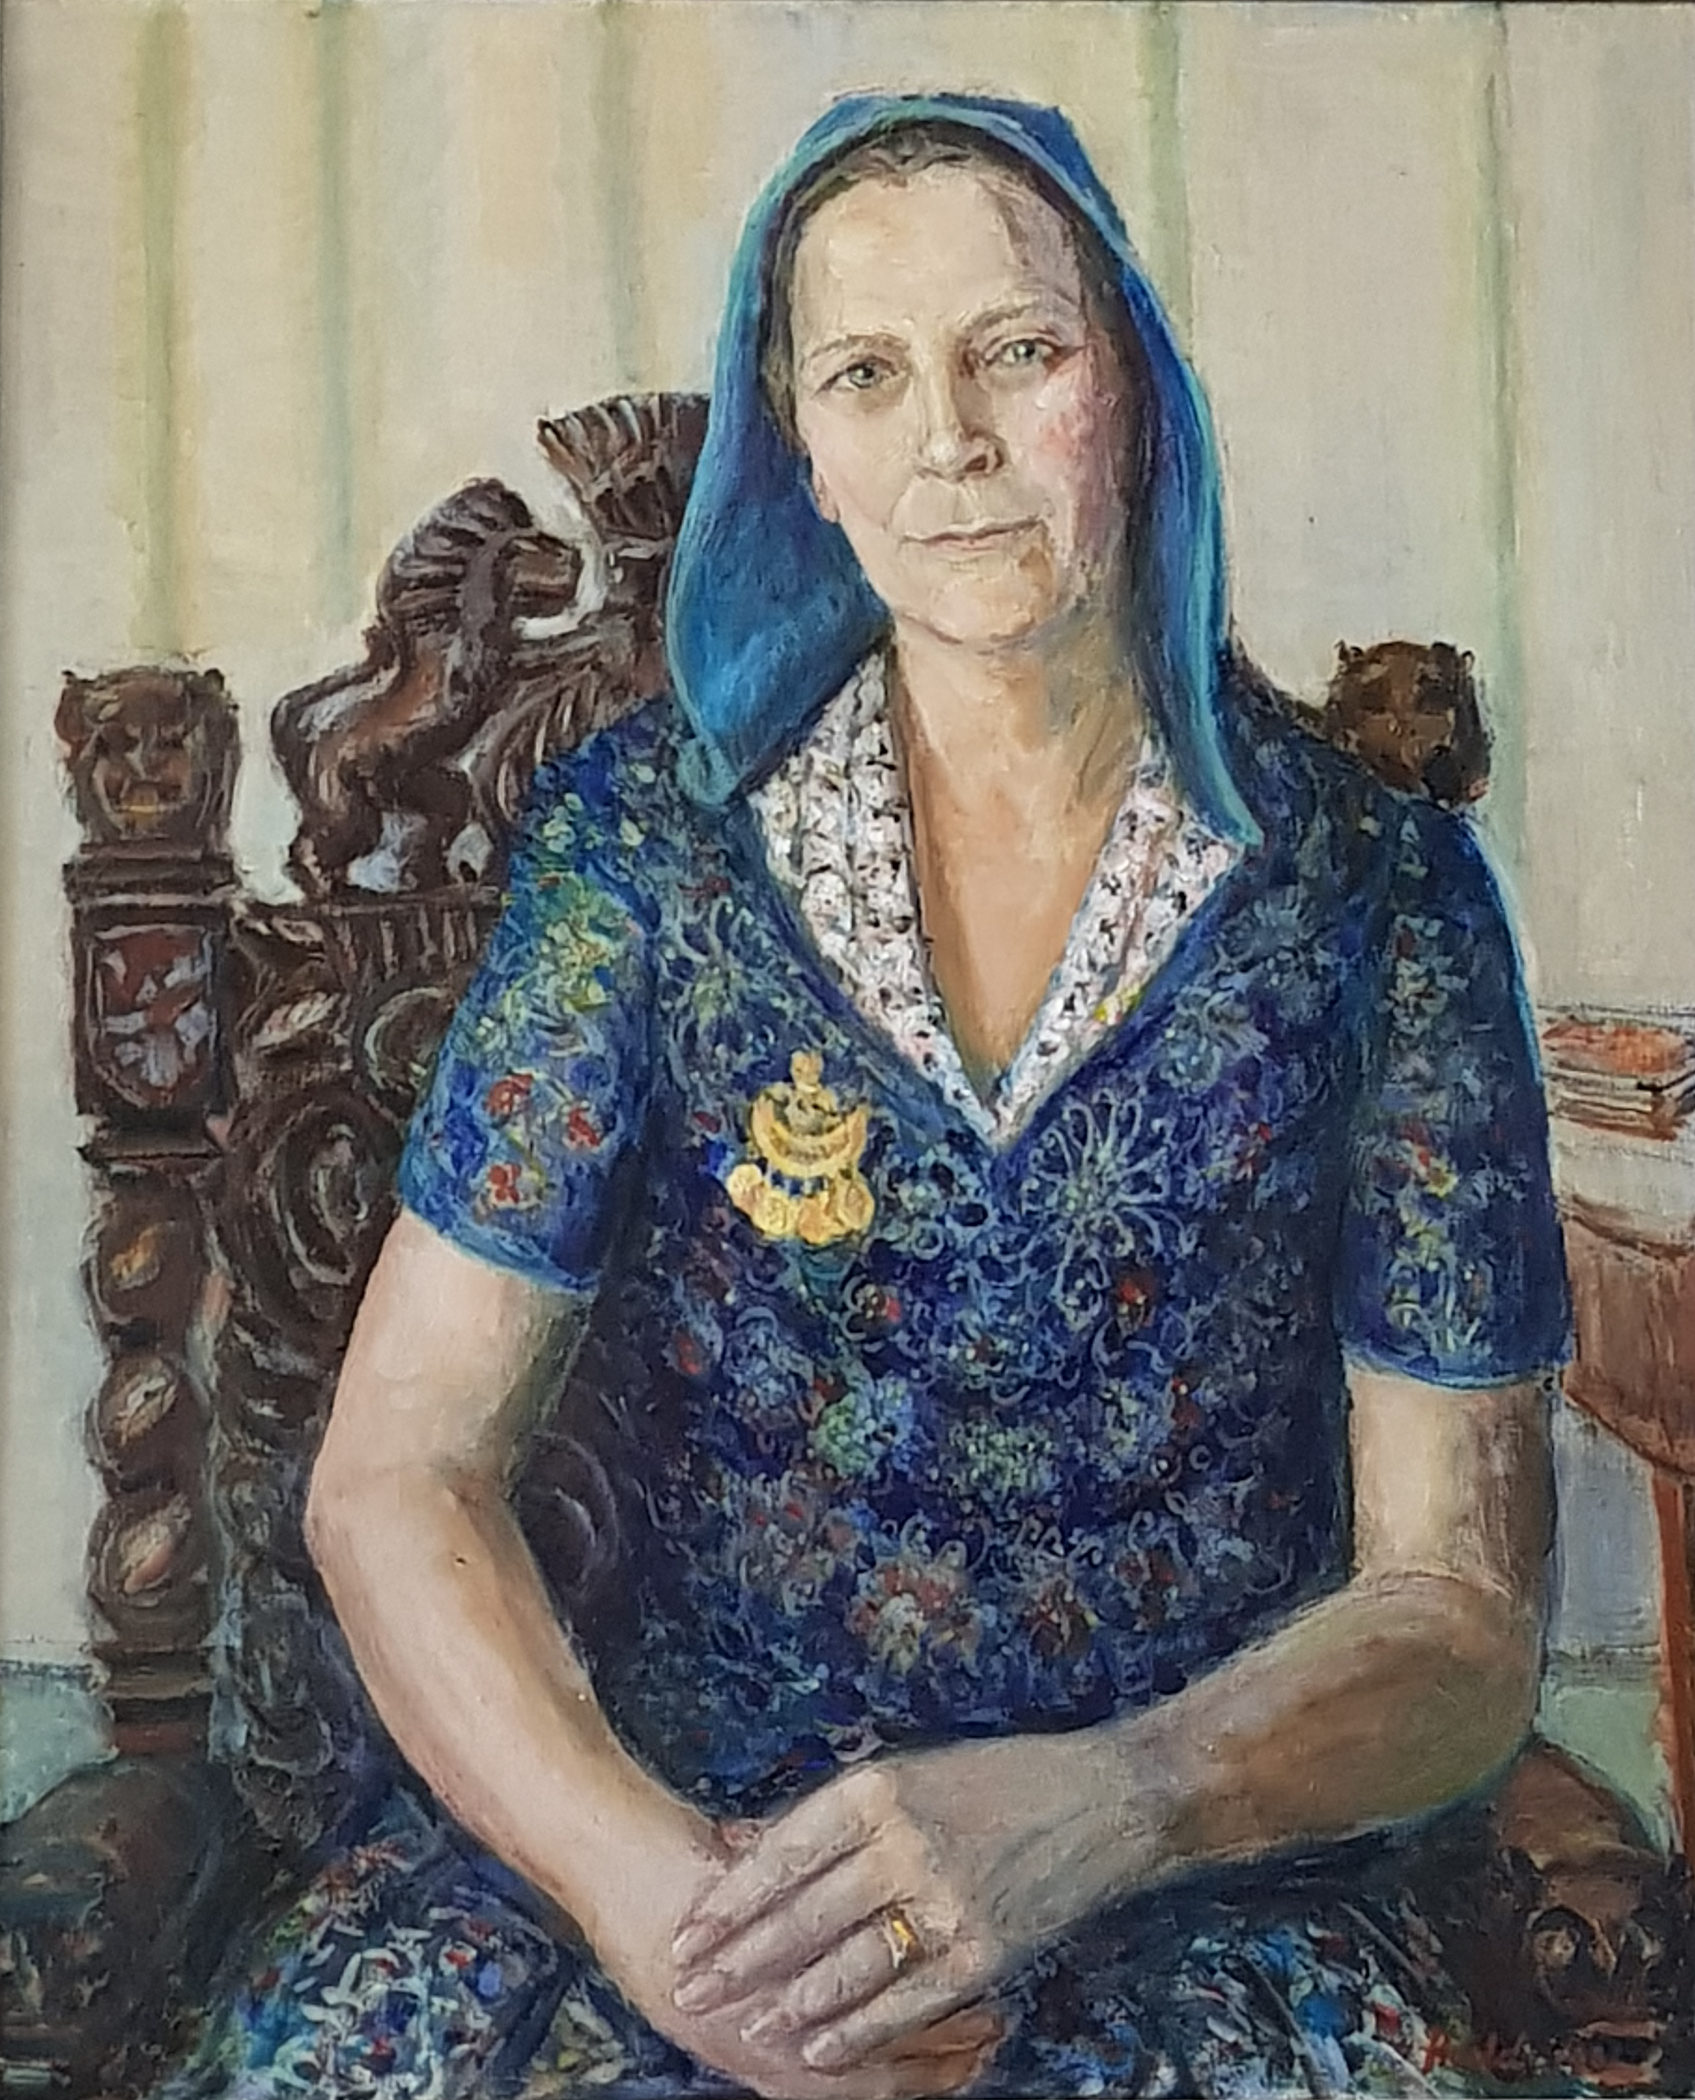 Magda Boalt, family-owned portrait by Edward Hald